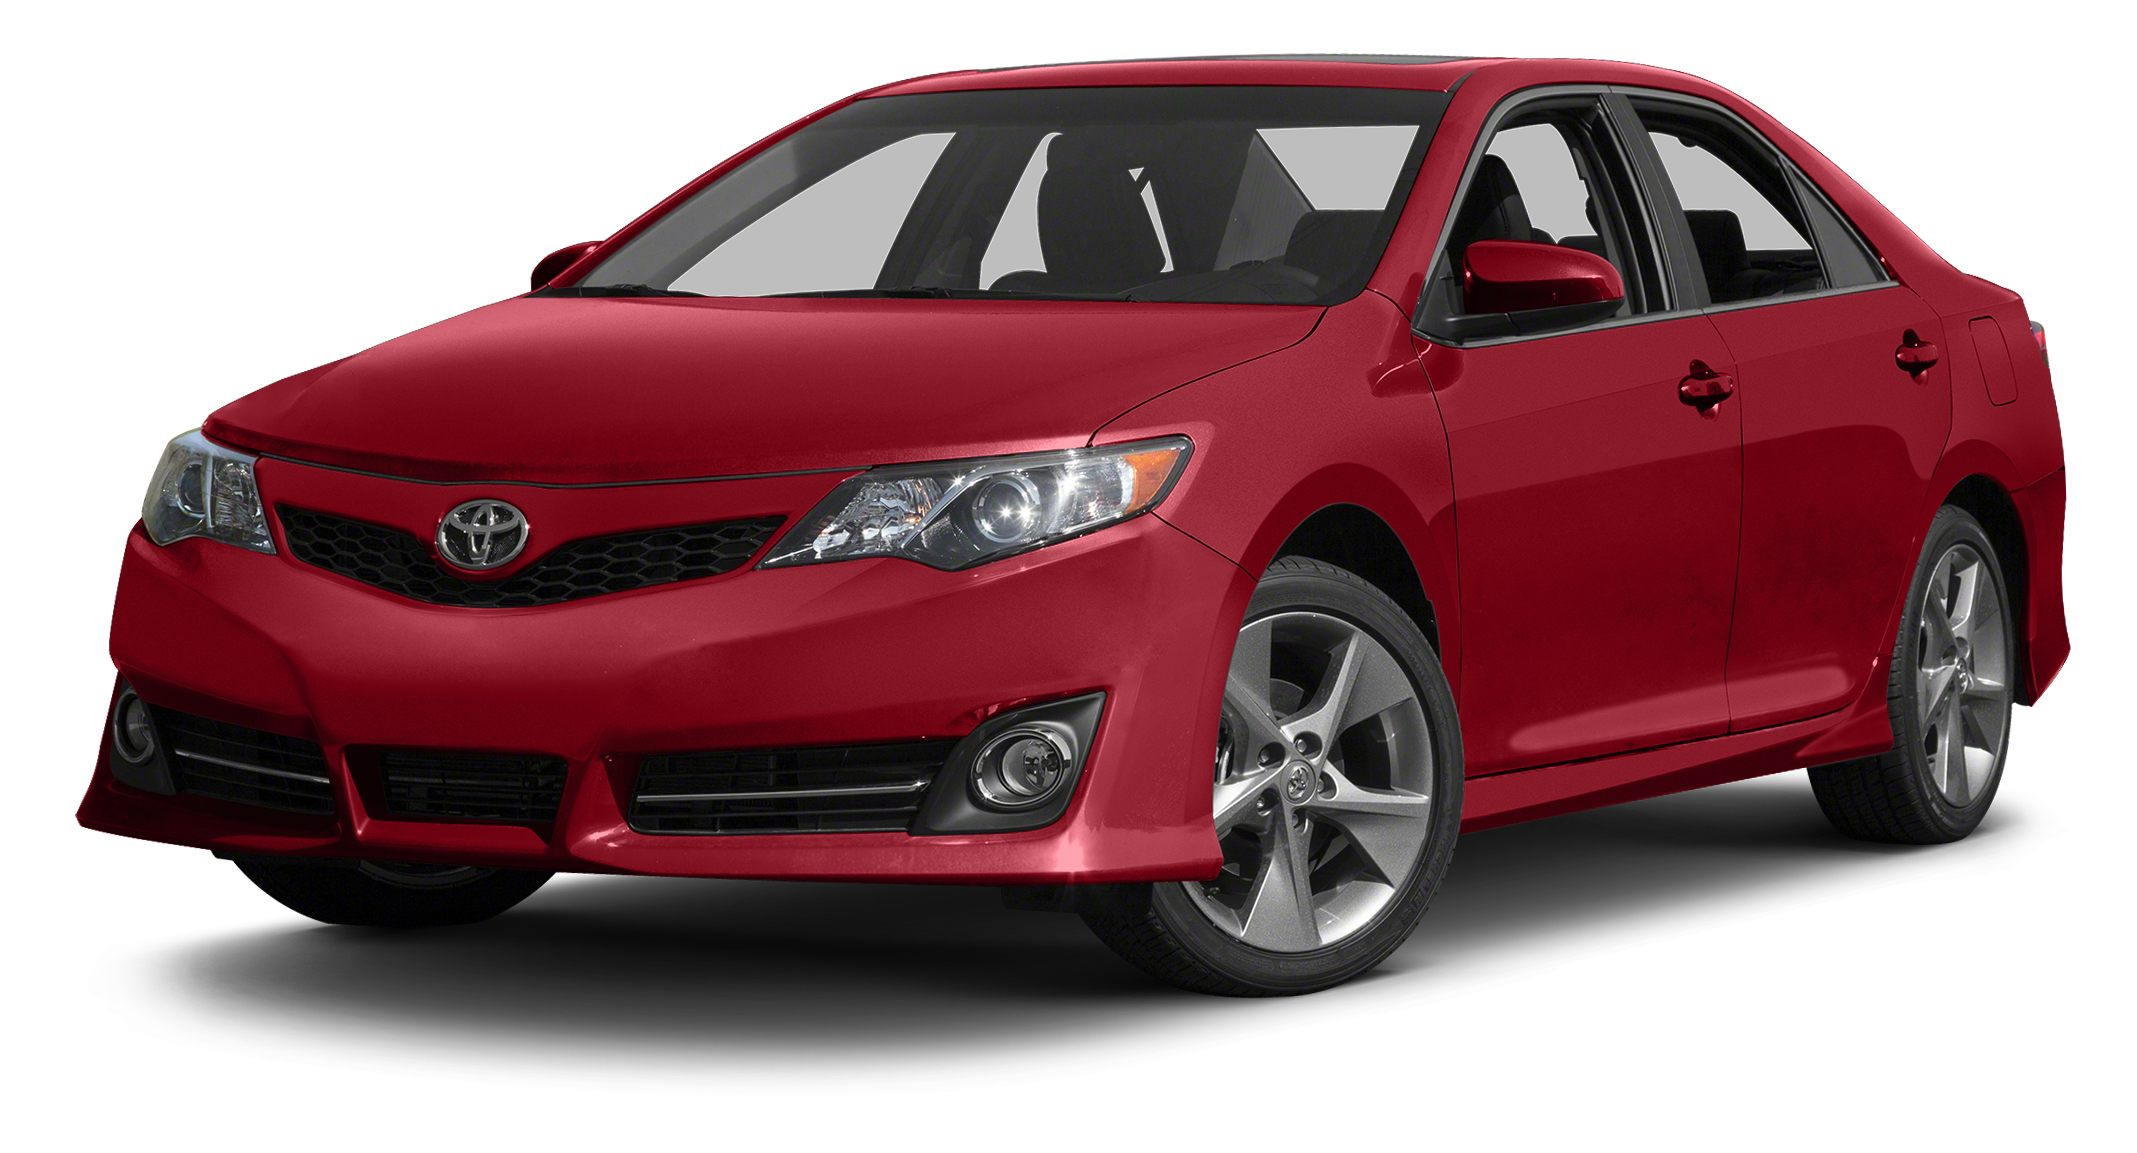 2013 Toyota Camry SE CARFAX 1-Owner LOW MILES - 35805 EPA 35 MPG Hwy25 MPG City BARCELONA RED